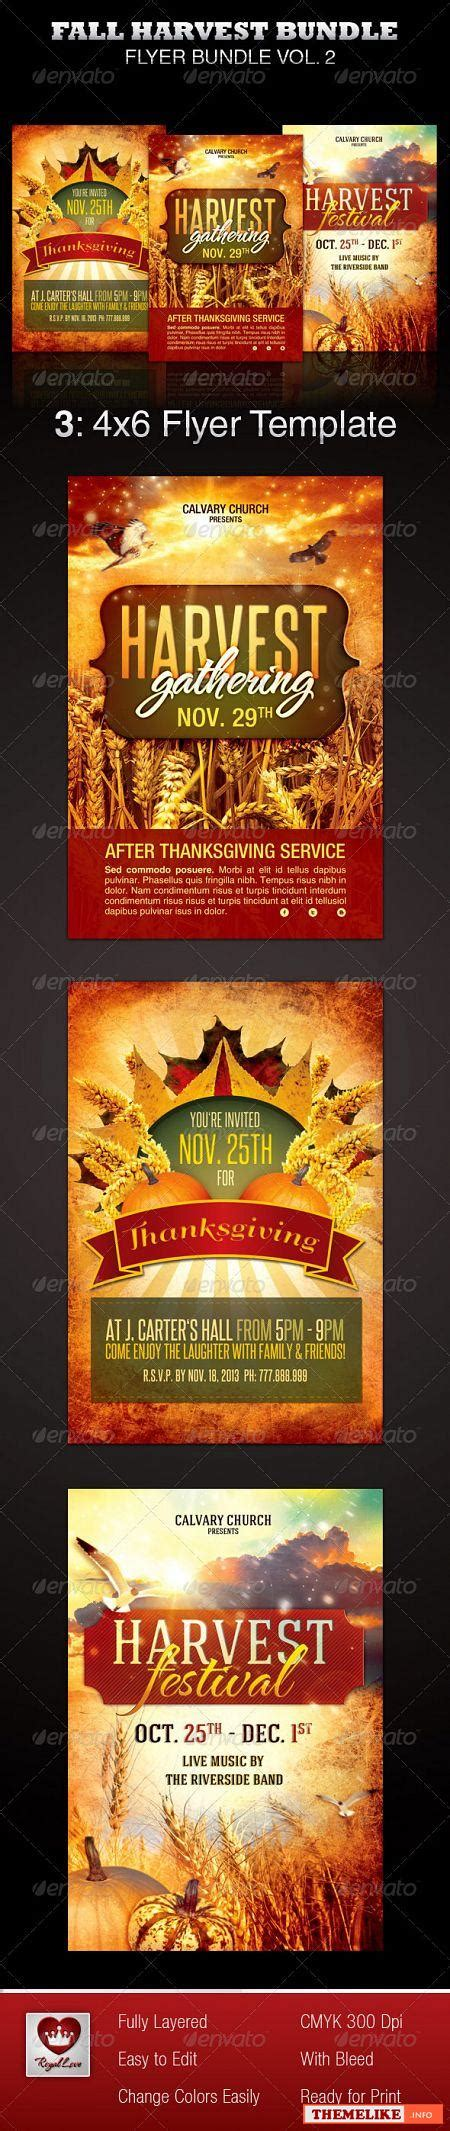 Graphicriver Harvest Festival Church Flyer Template All Design Template Photoshop Vector Harvest Festival Flyer Free Template